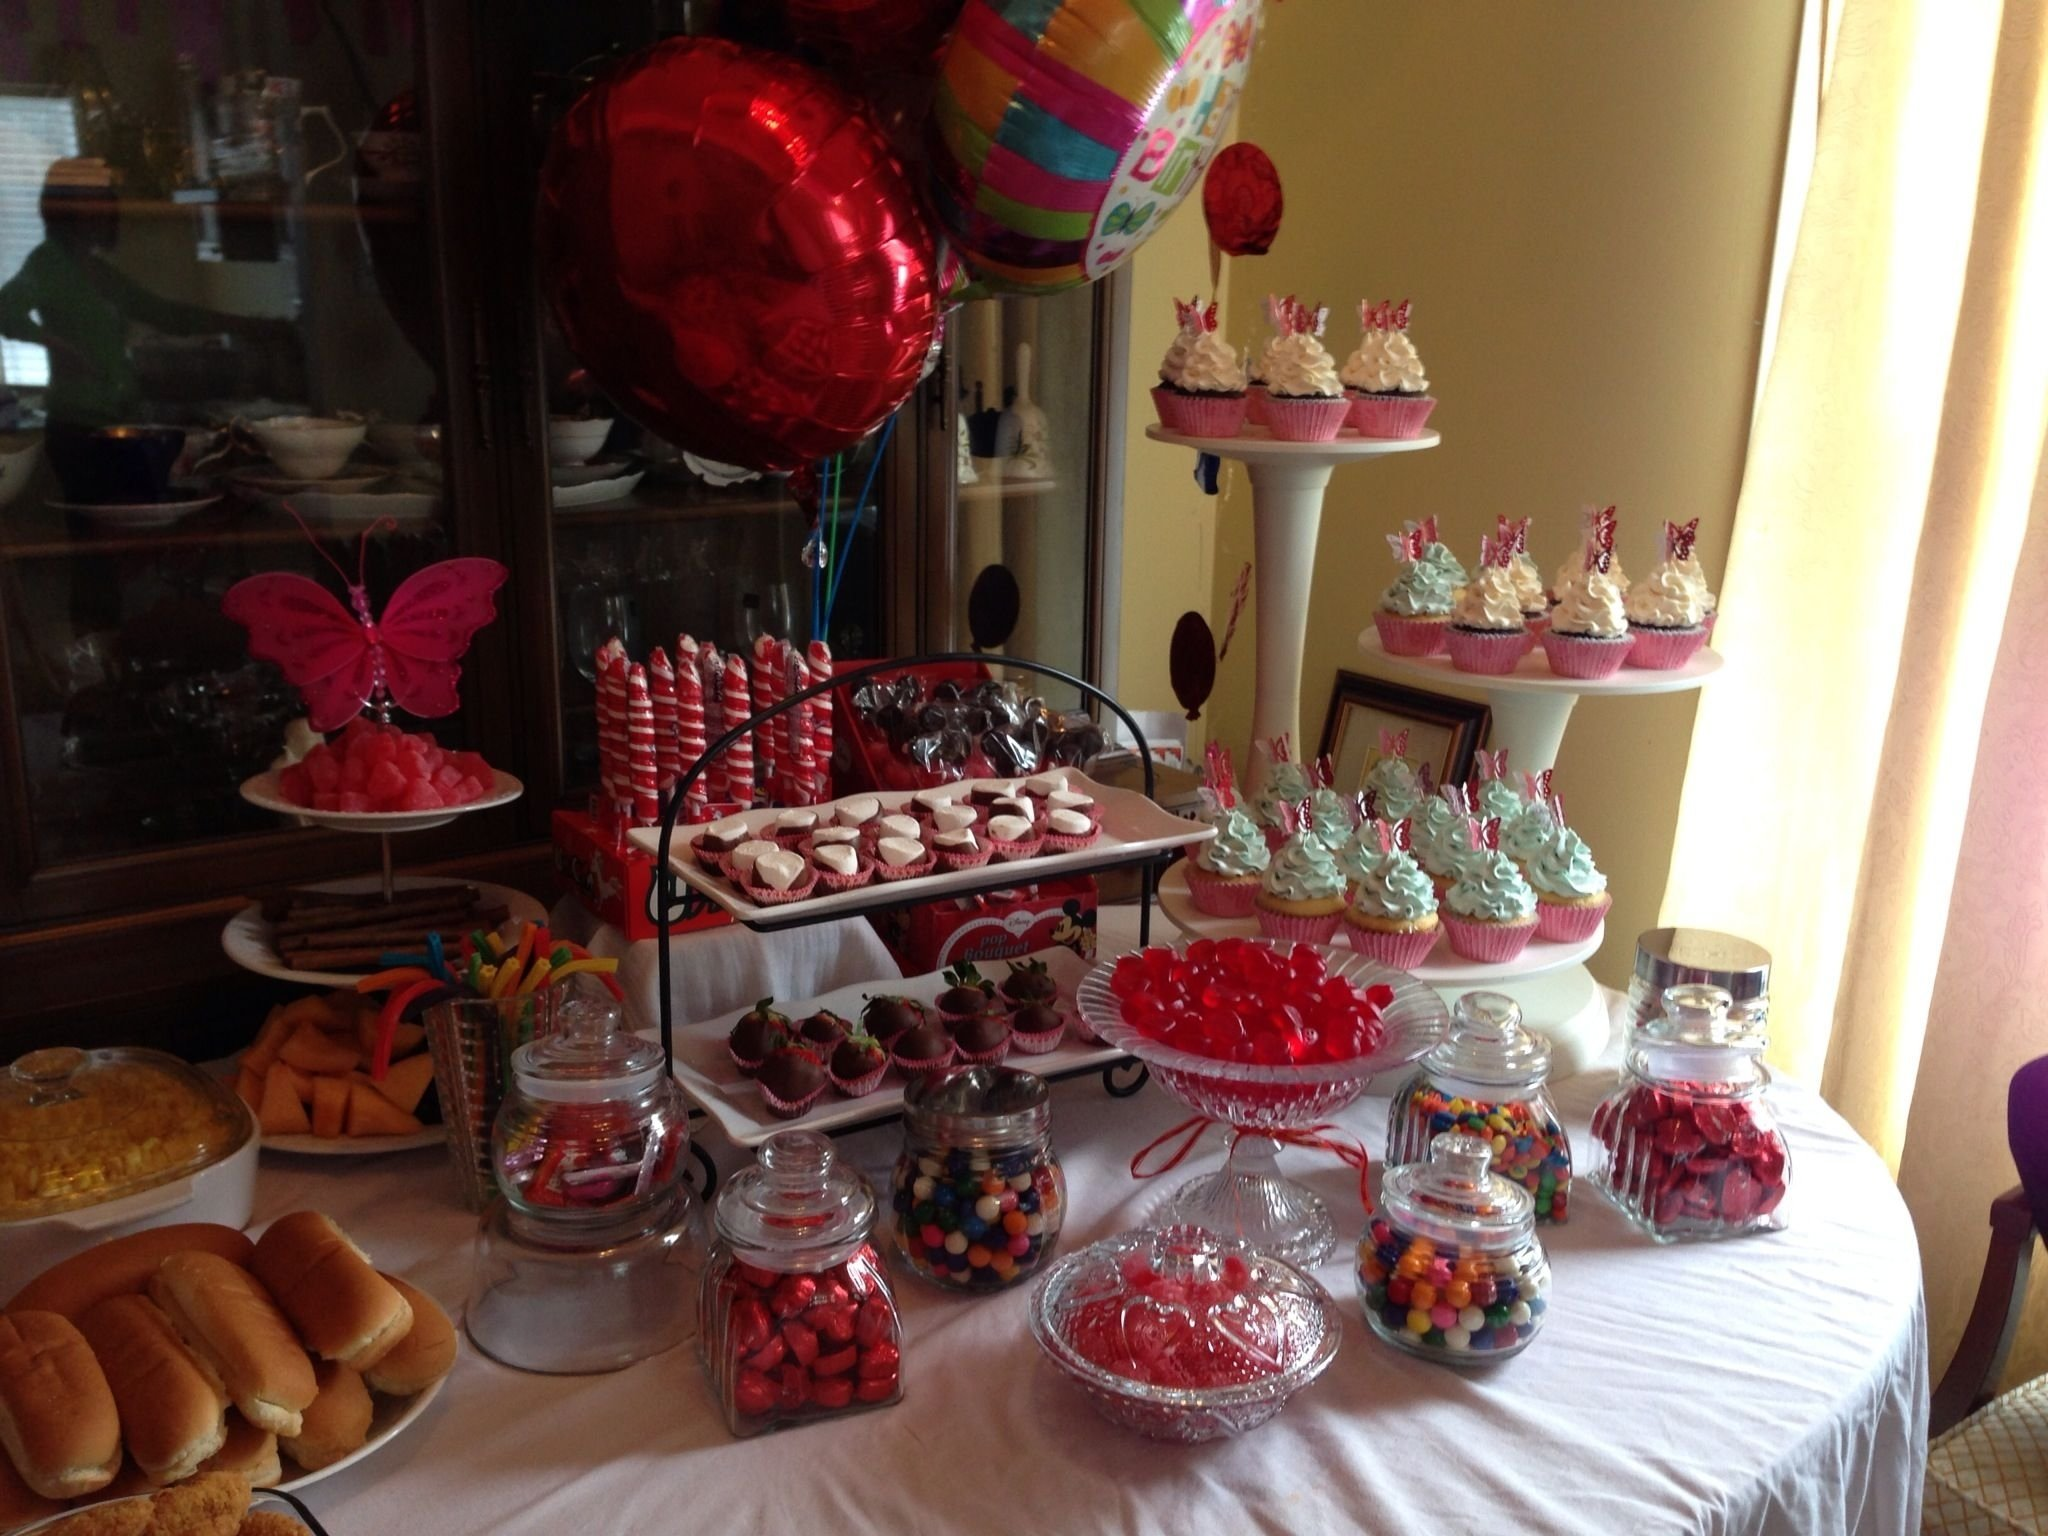 10 Lovely 13Th Girl Birthday Party Ideas beas 13th birthday party party ideas pinterest 13th birthday 1 2021